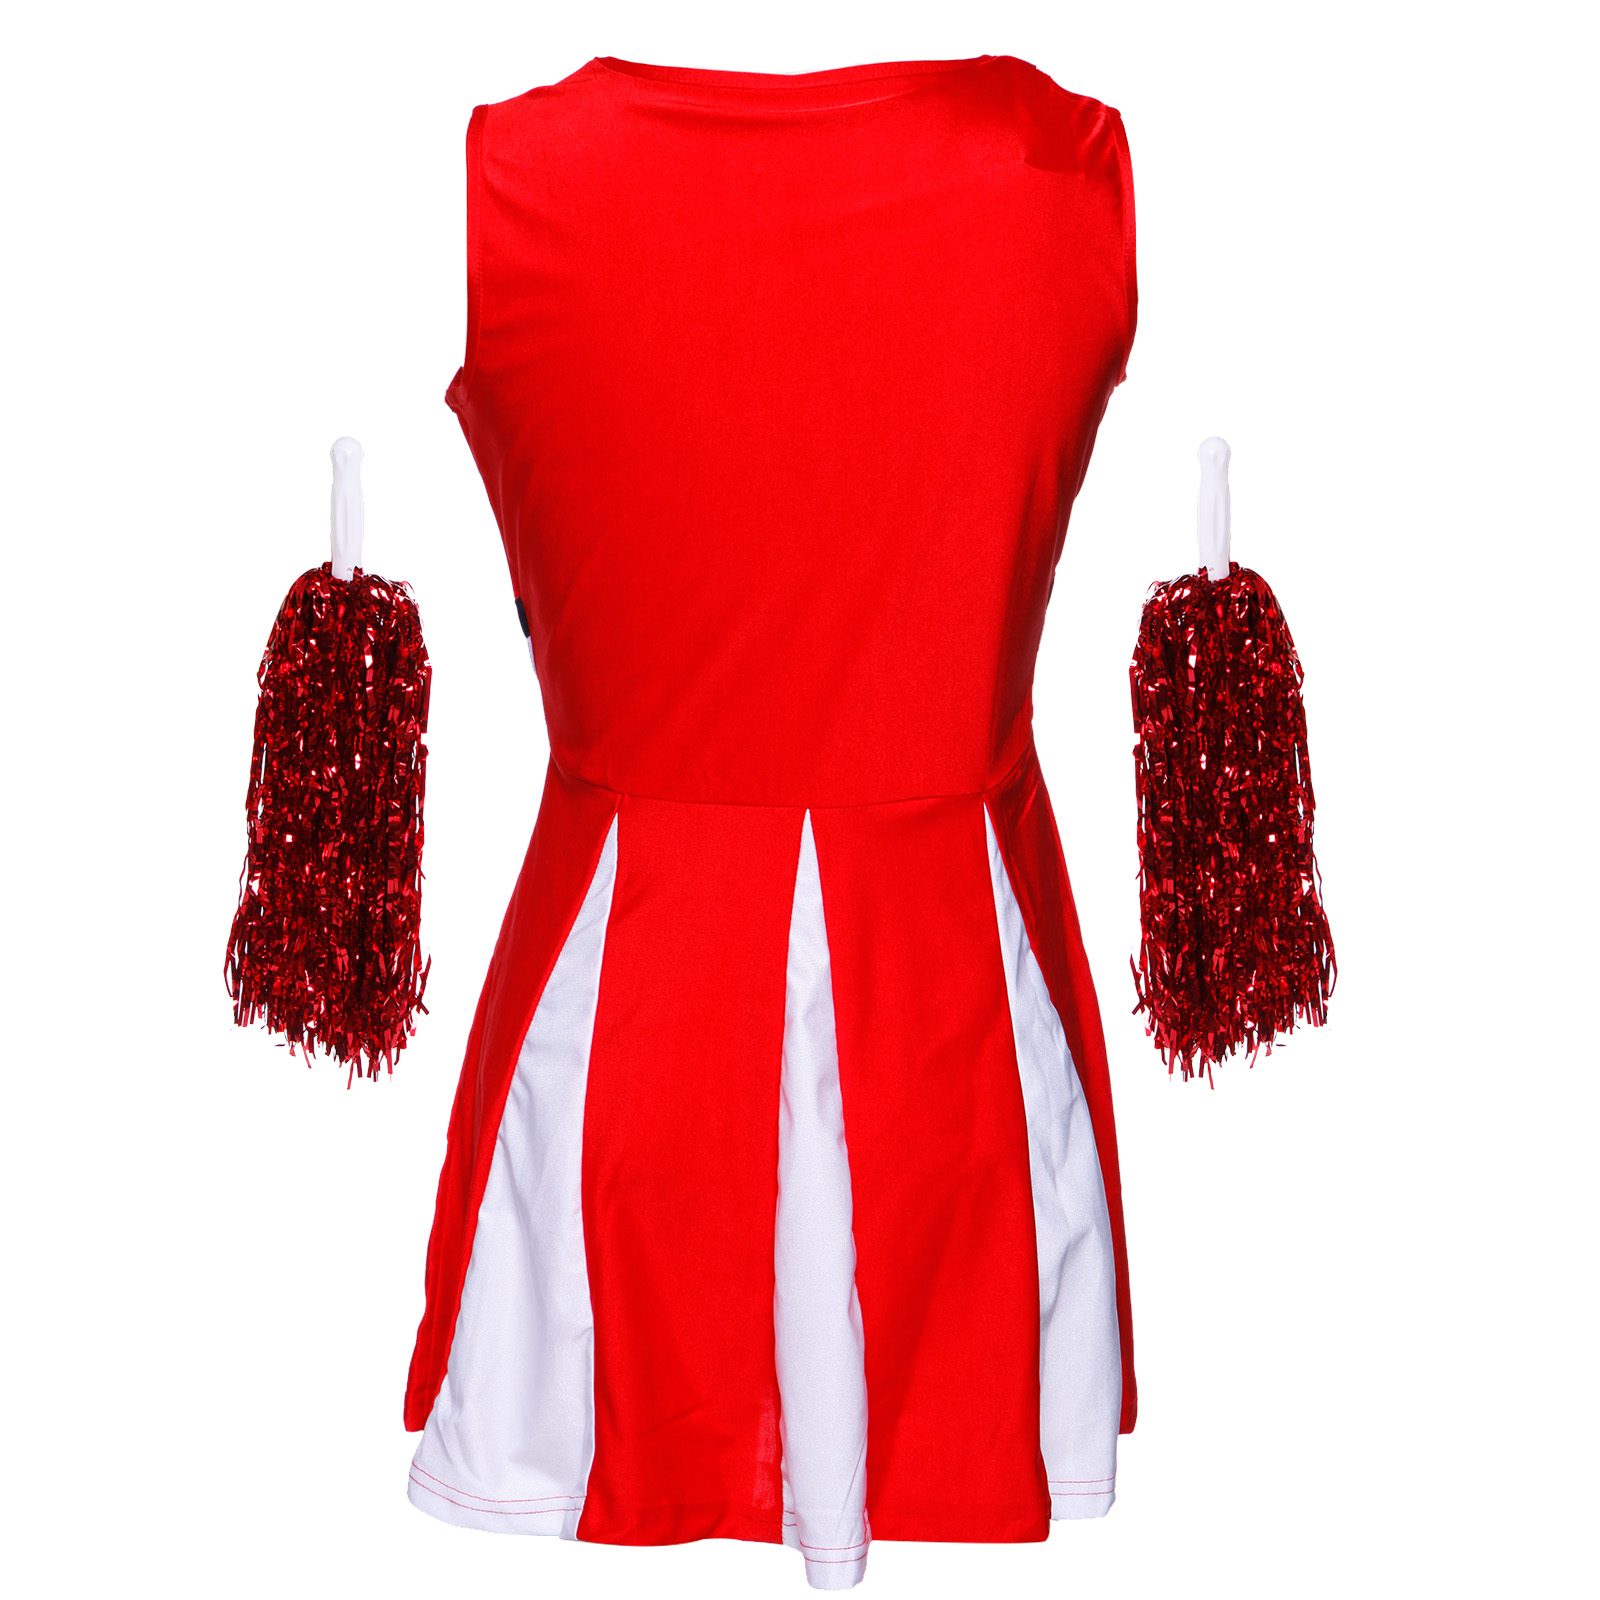 Cheerleader-Fancy-Dress-Outfit-High-School-Musical-Cheer-Uniform-Costume-Pompoms miniature 4